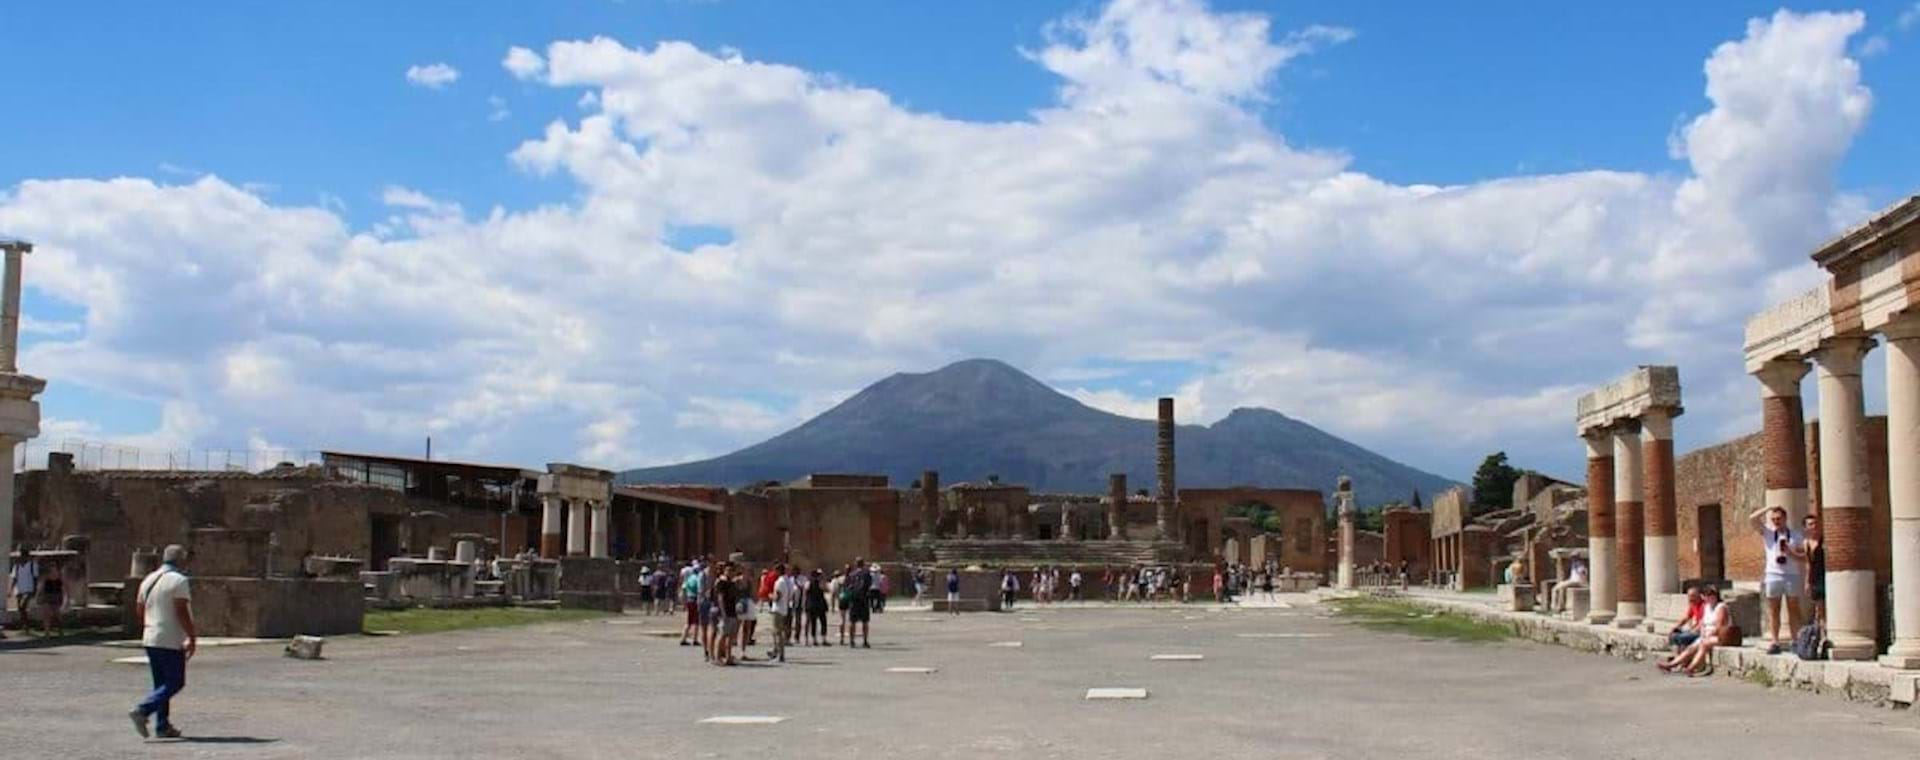 The Ethernal city of Pompeii